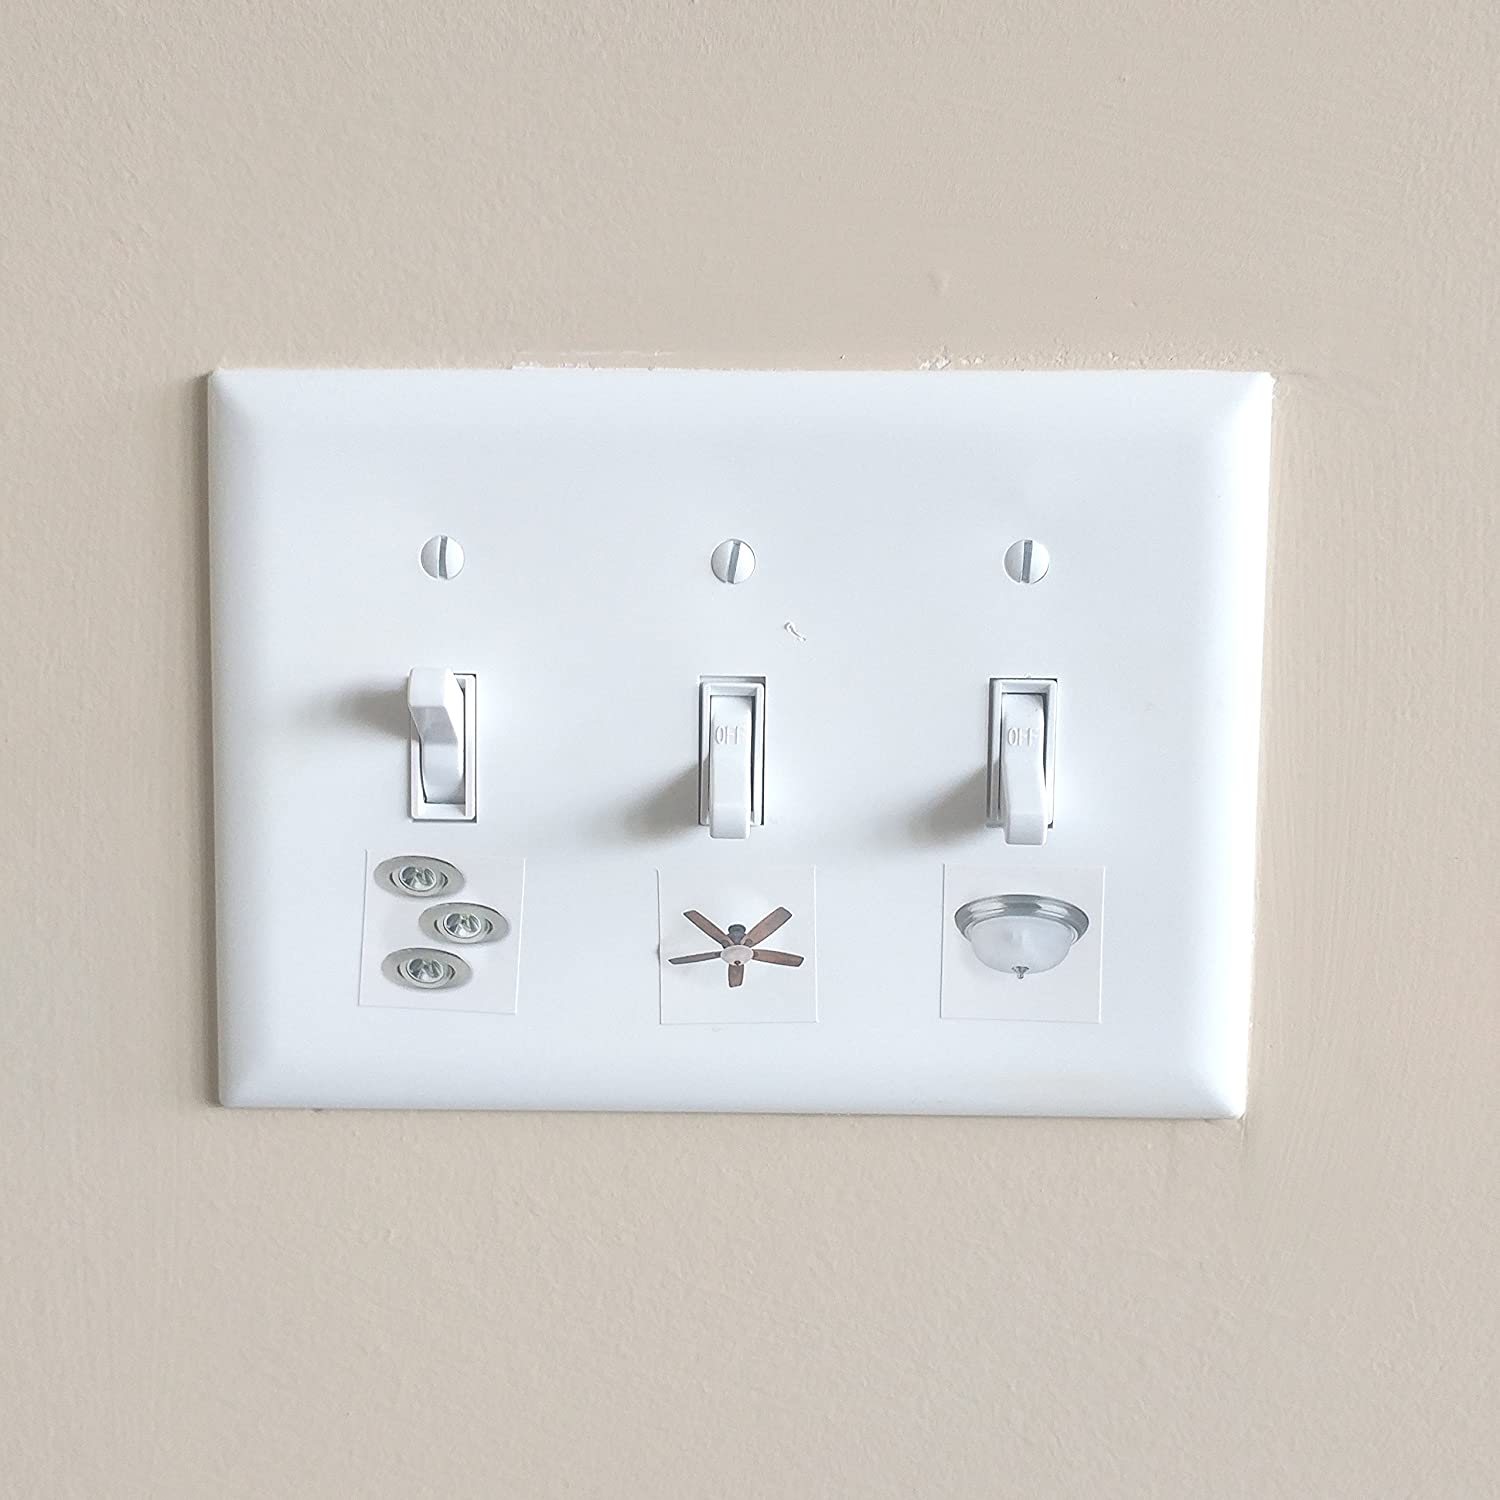 Correct Switch - Light Switch Labels